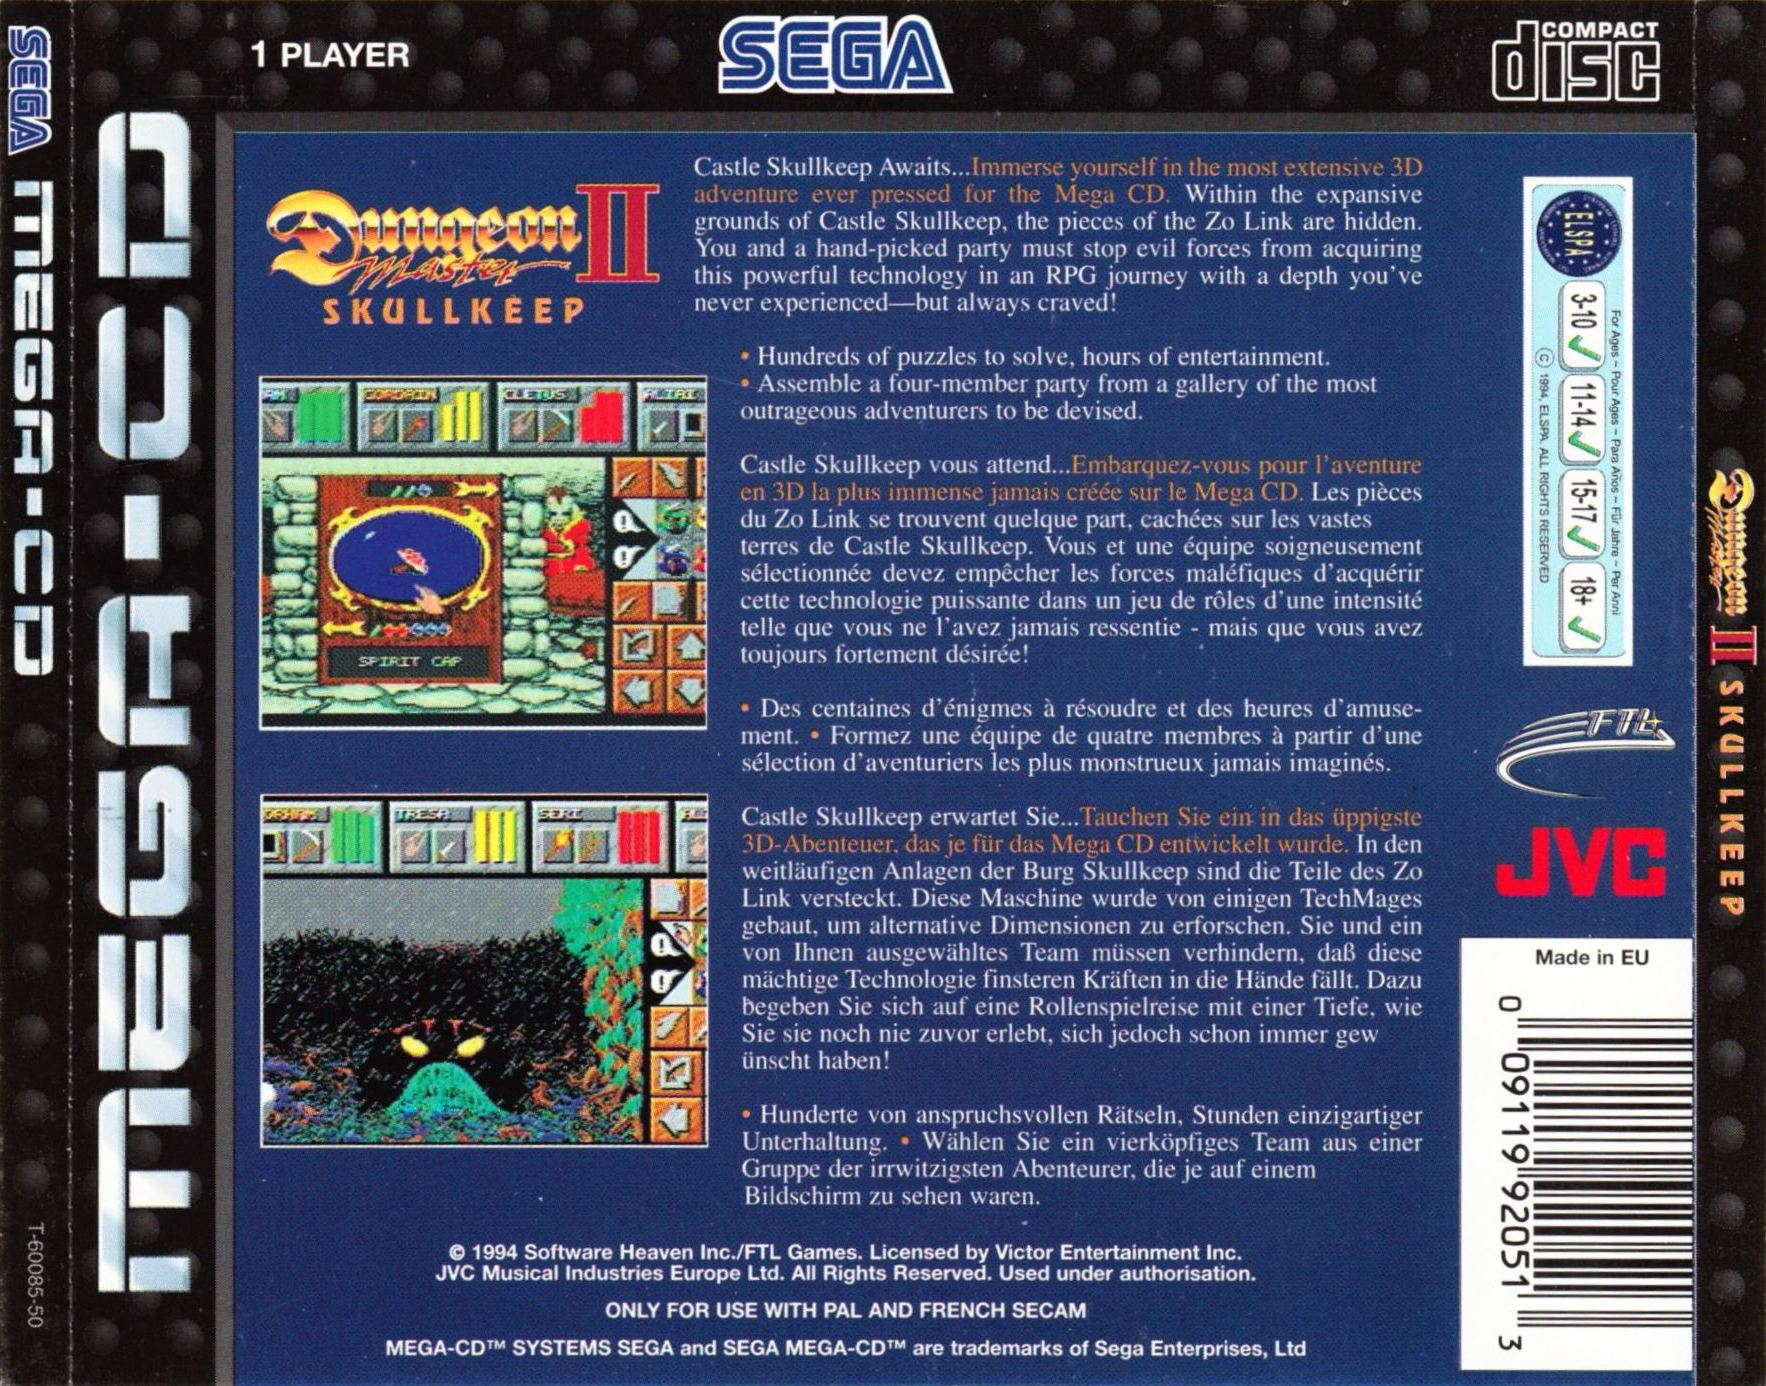 Game - Dungeon Master II - EU - Mega CD - Back Card - Front - Scan